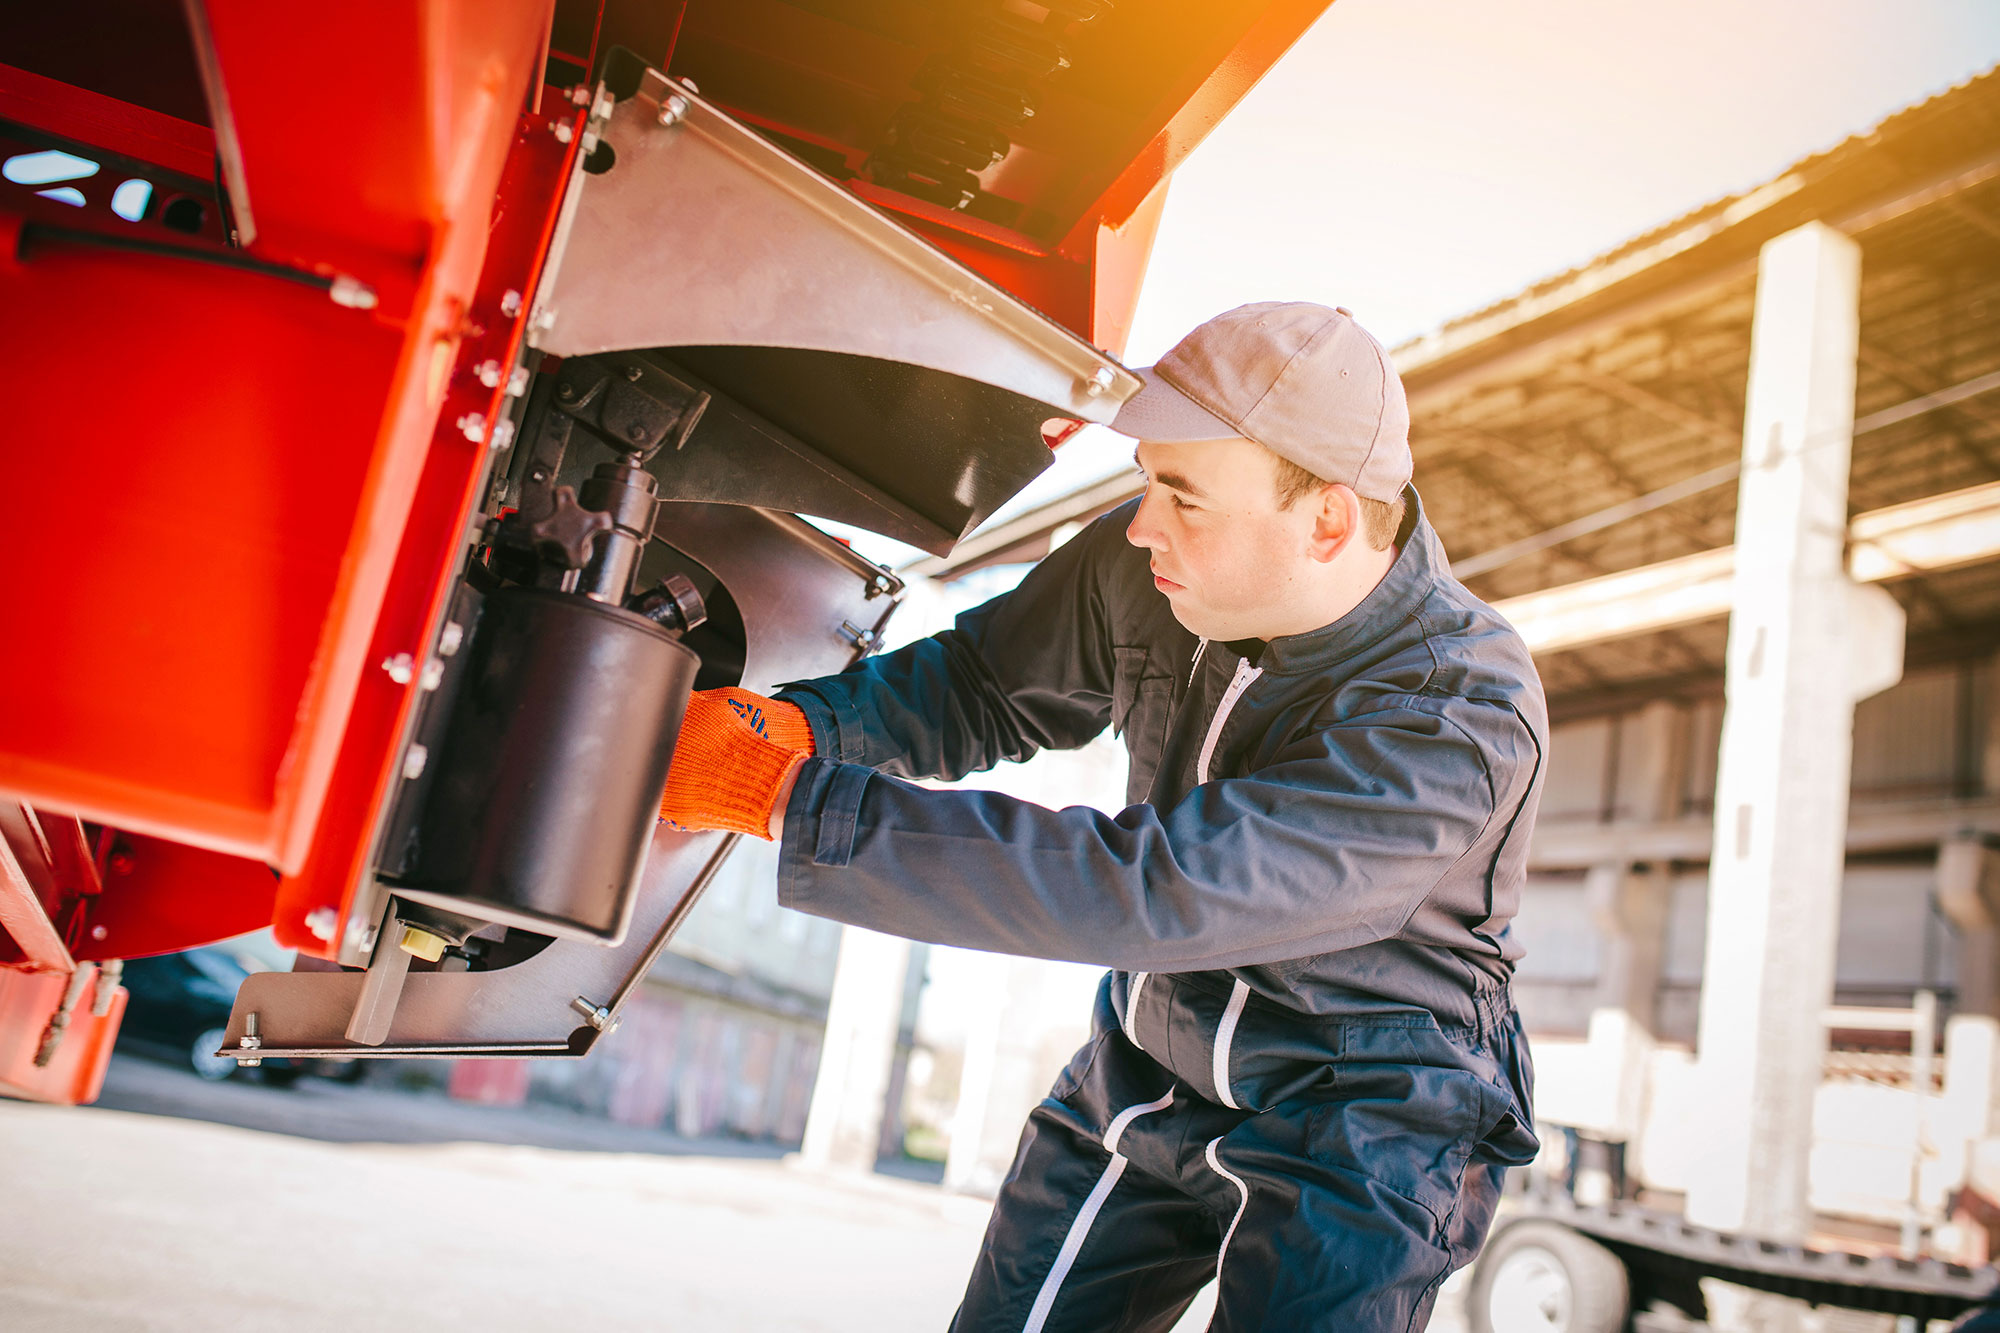 Grease 101 for tractors and other farm machinery | AGDAILY